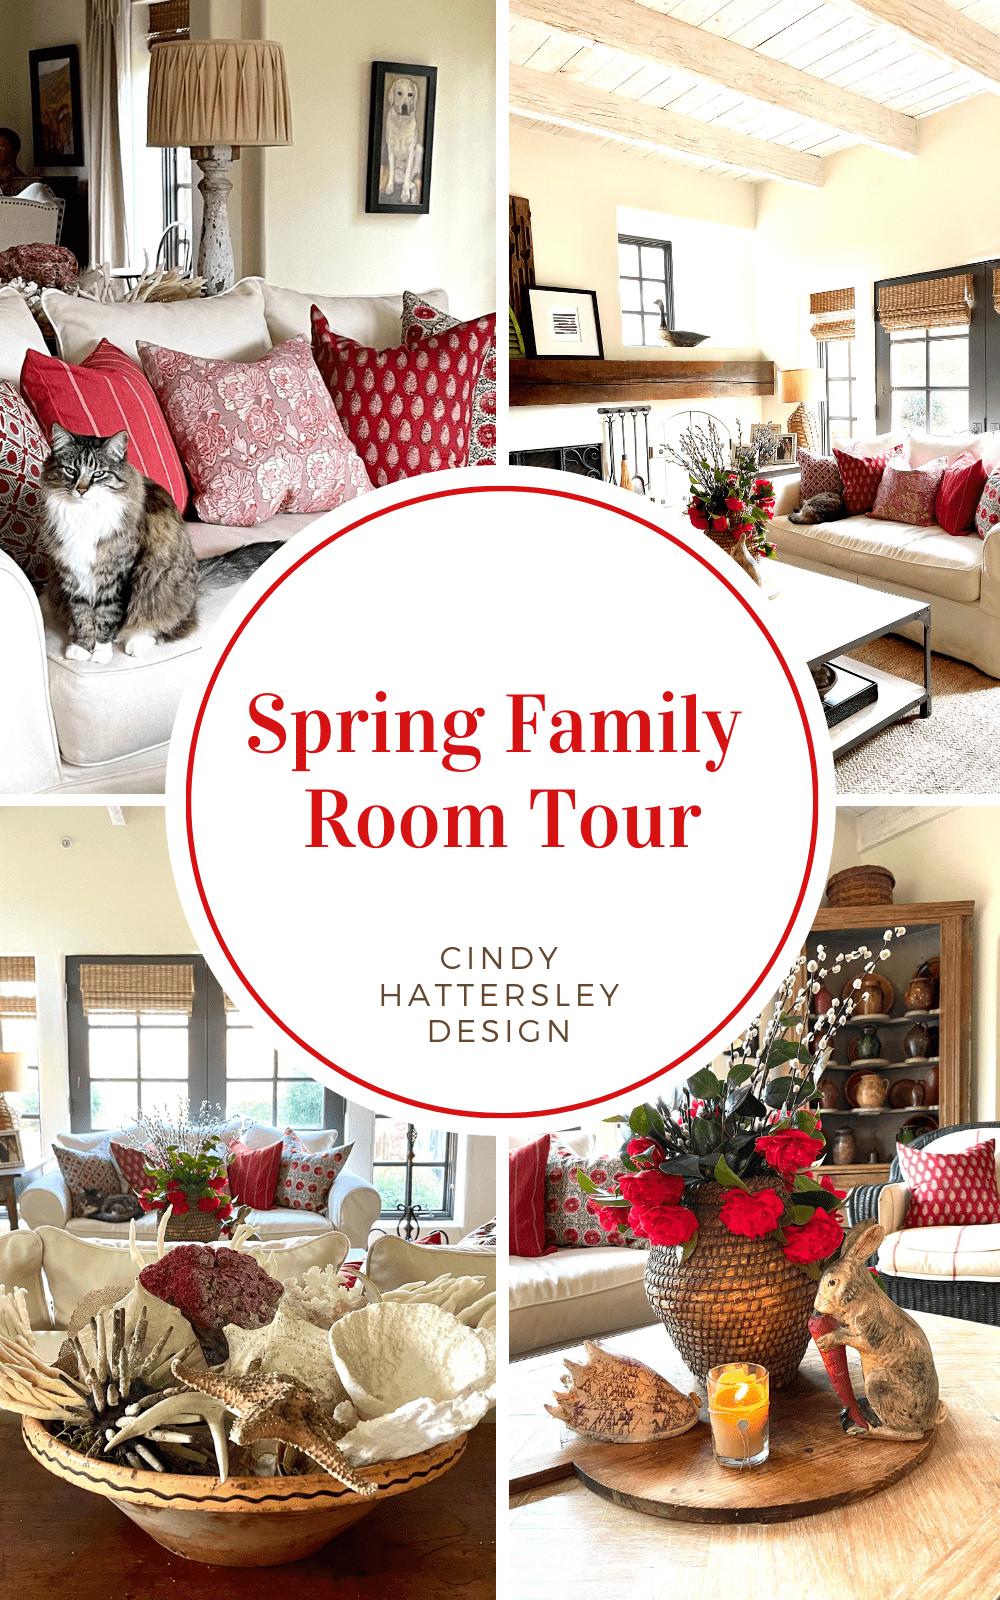 Spring Family Room Tour Cindy Hattersley